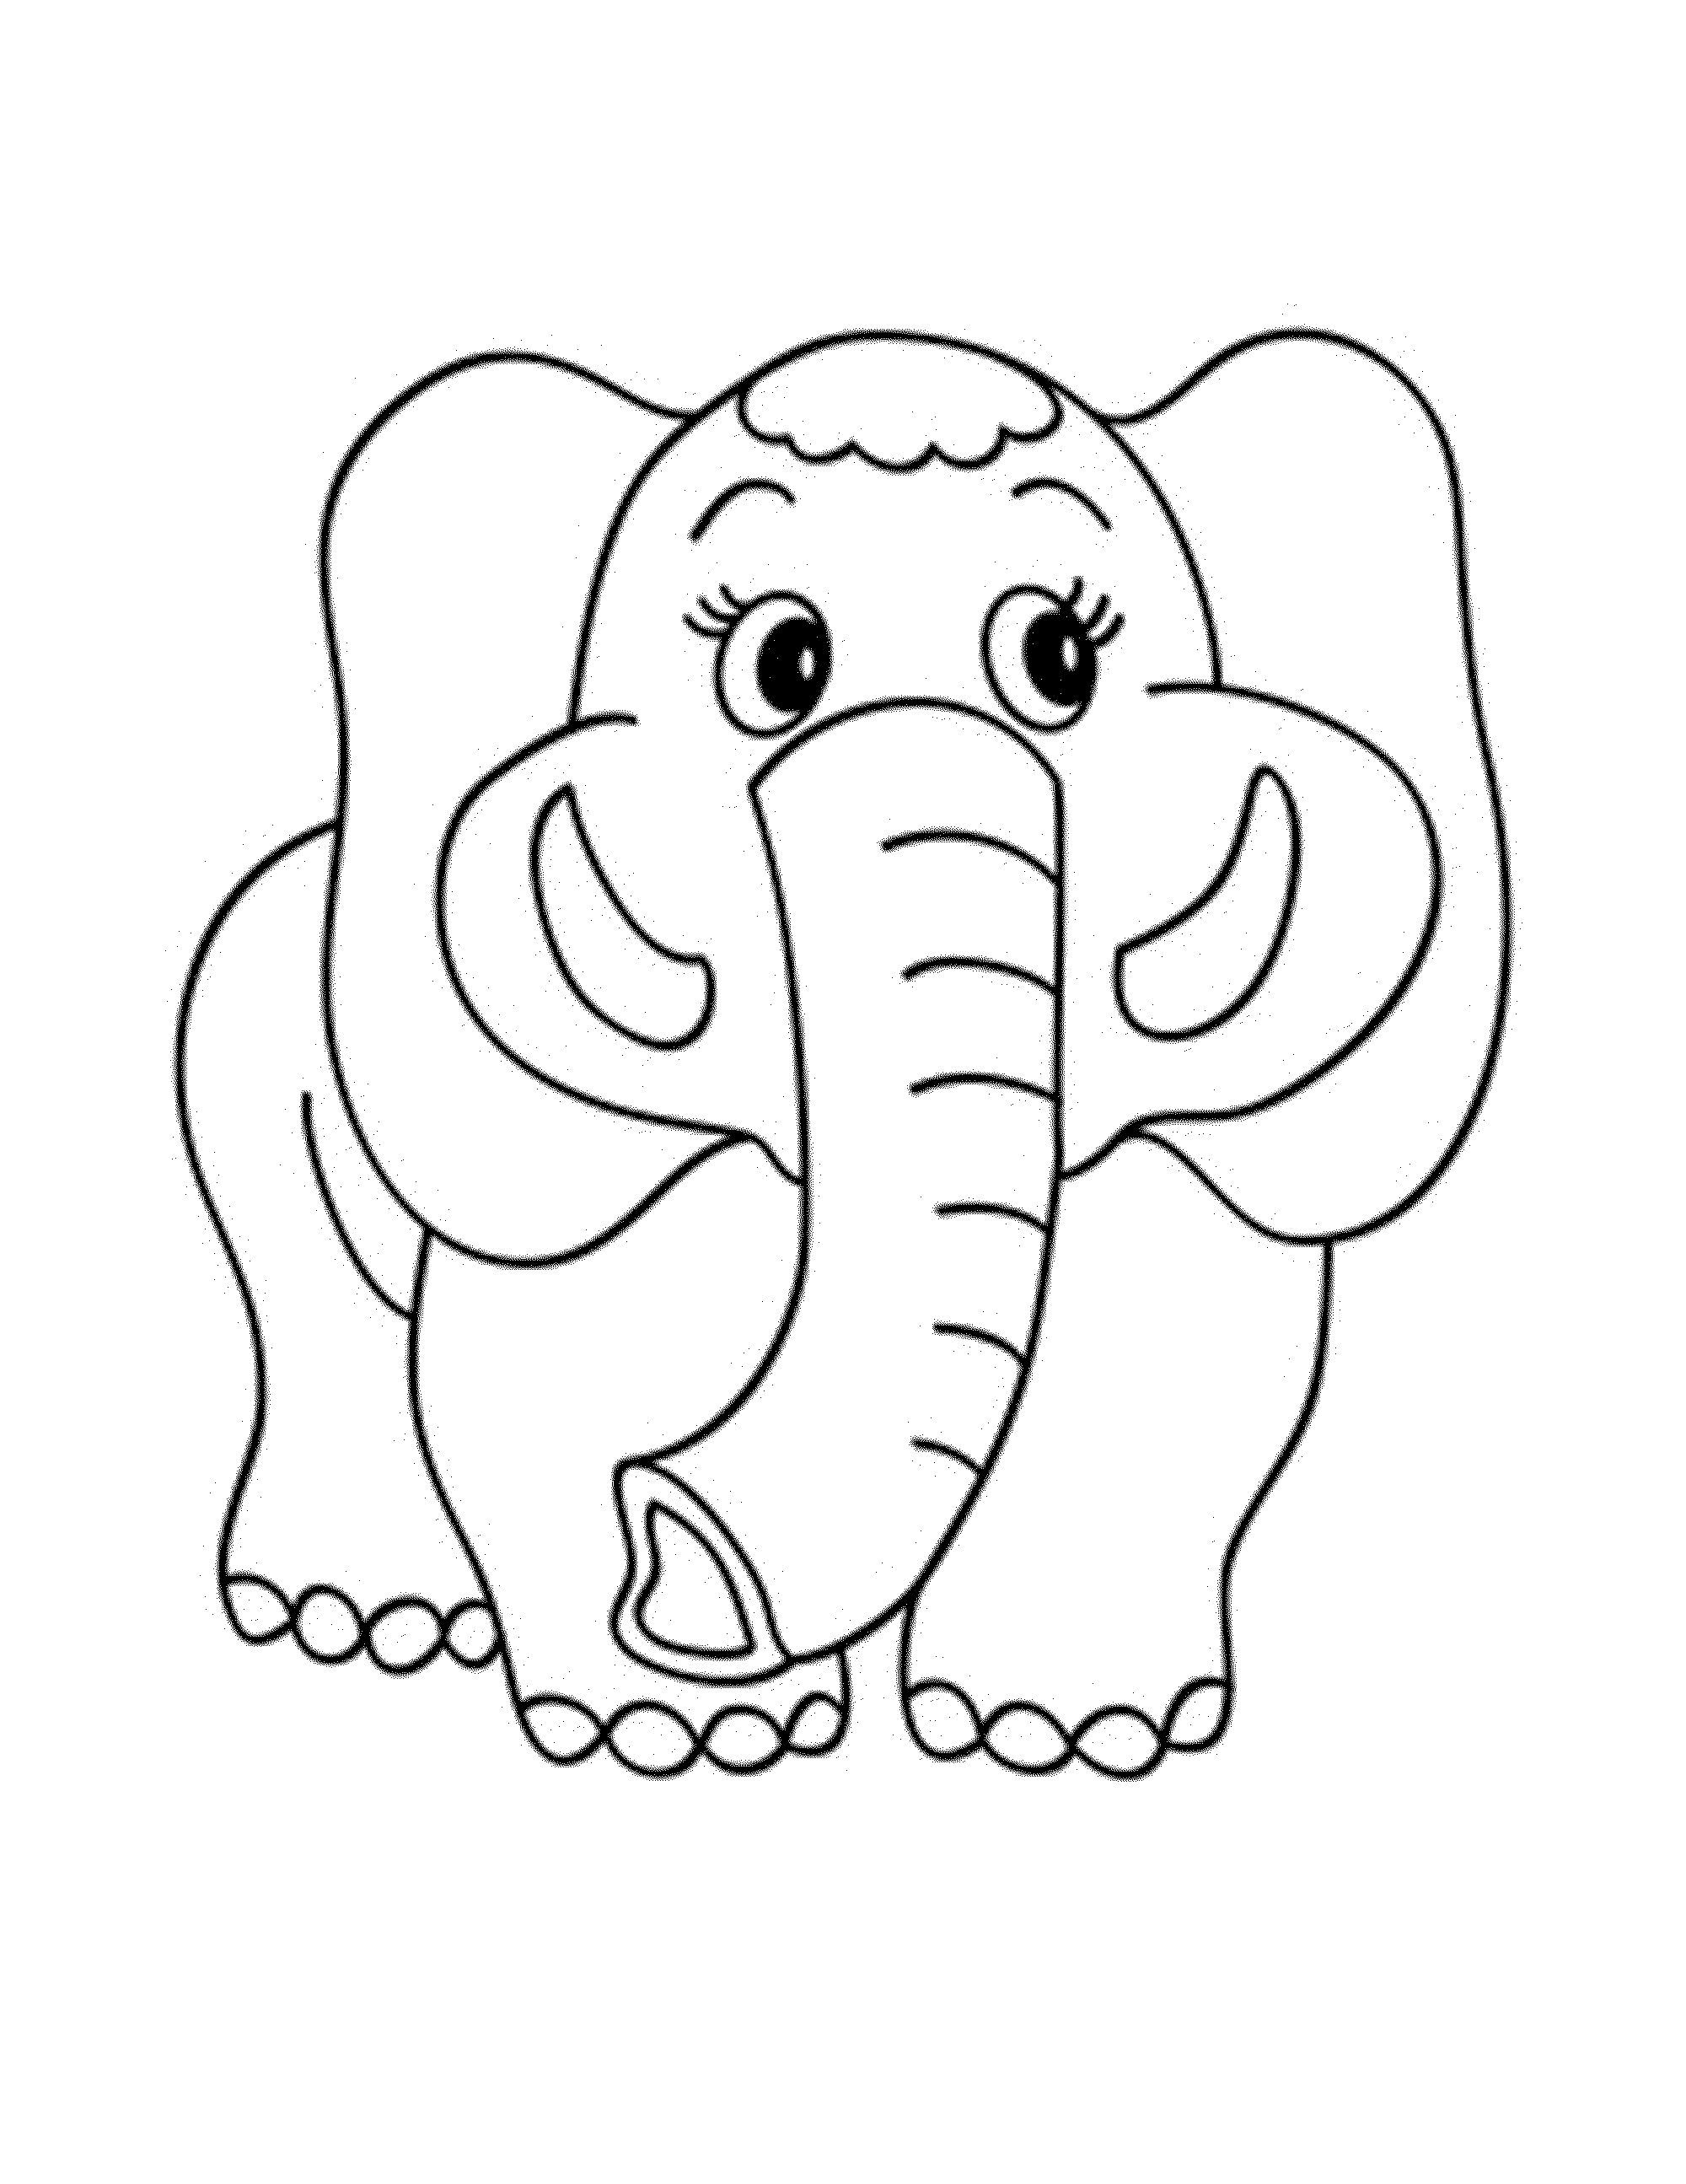 2000x2590 Amazing Cute Cartoon Animals With Big Eyes Coloring Pages Gallery